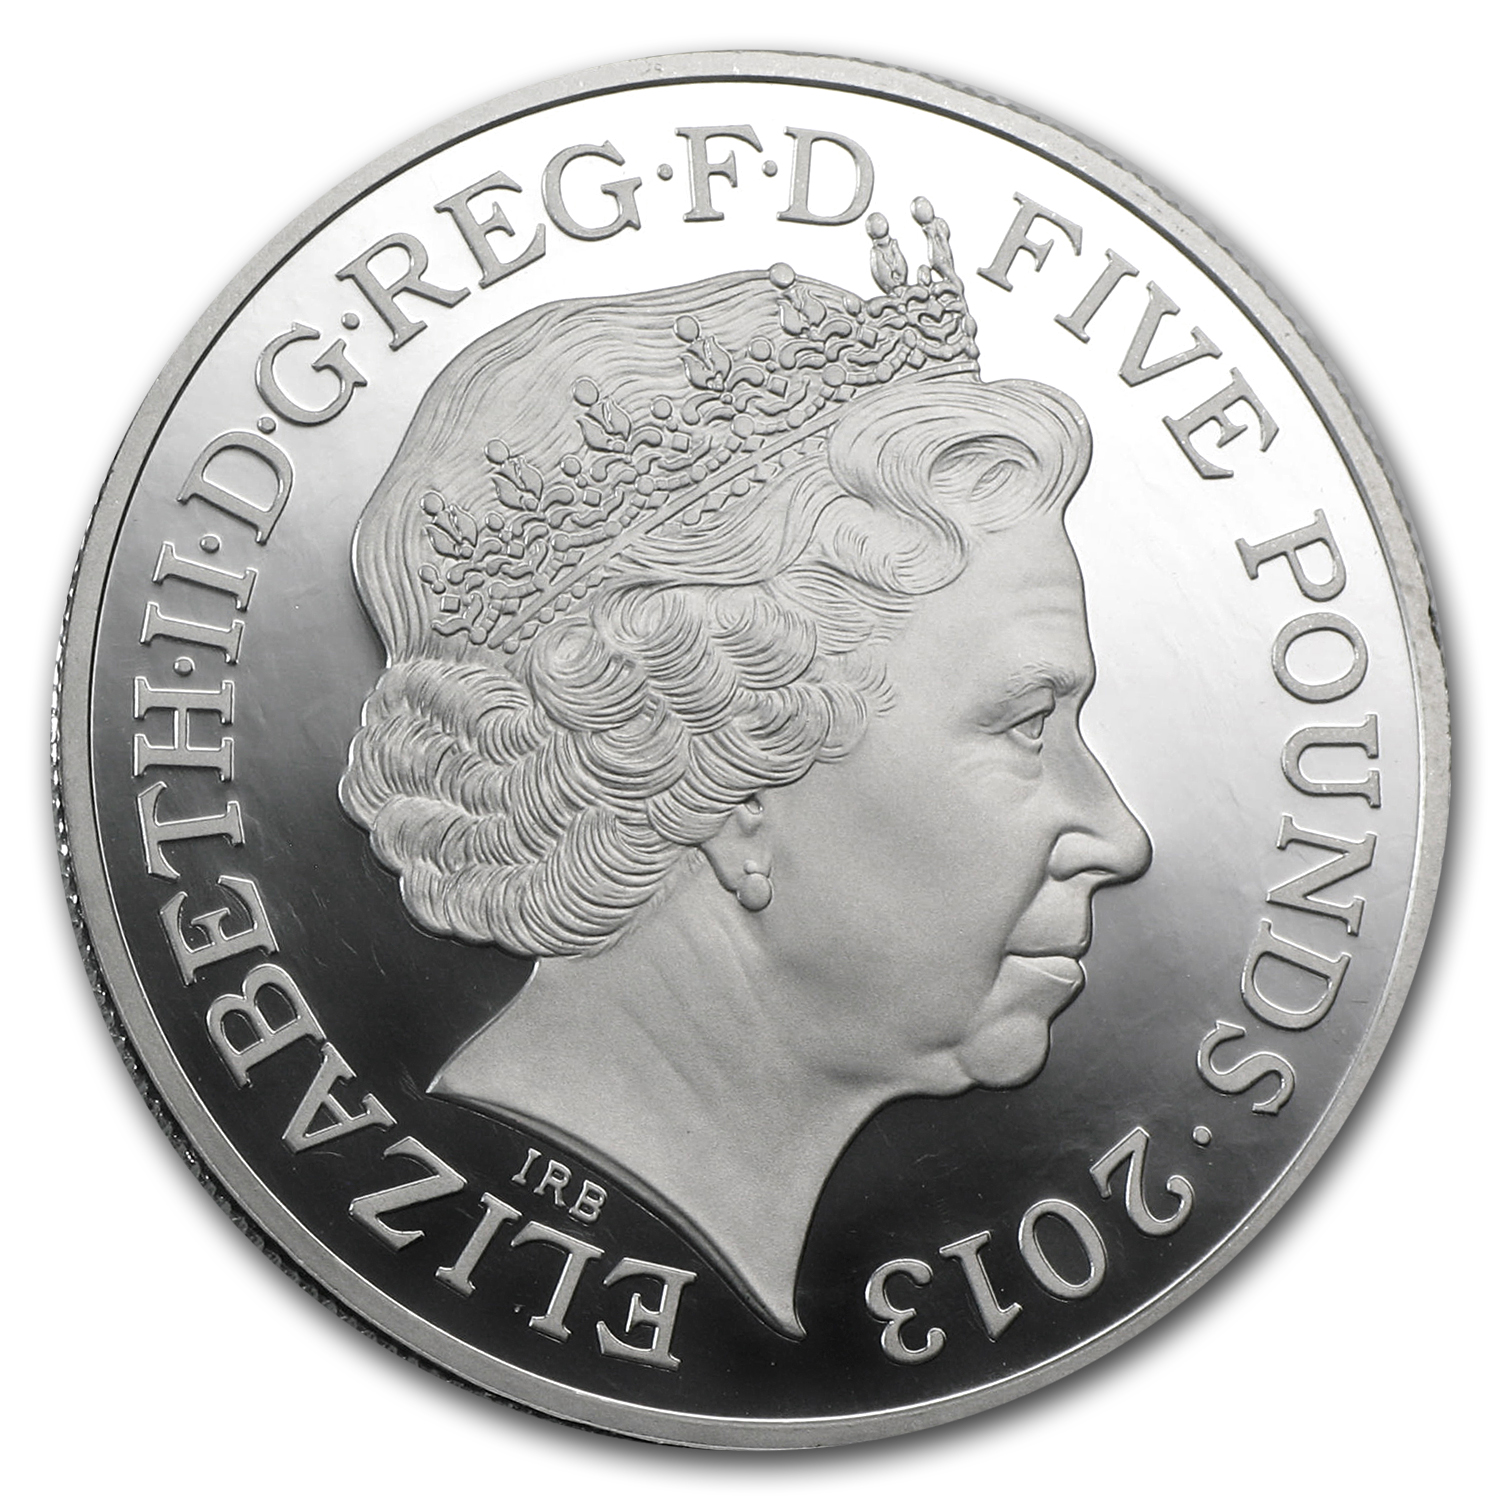 2013 Great Britain £5 Platinum Piedfort - Queen's Coronation Ann.